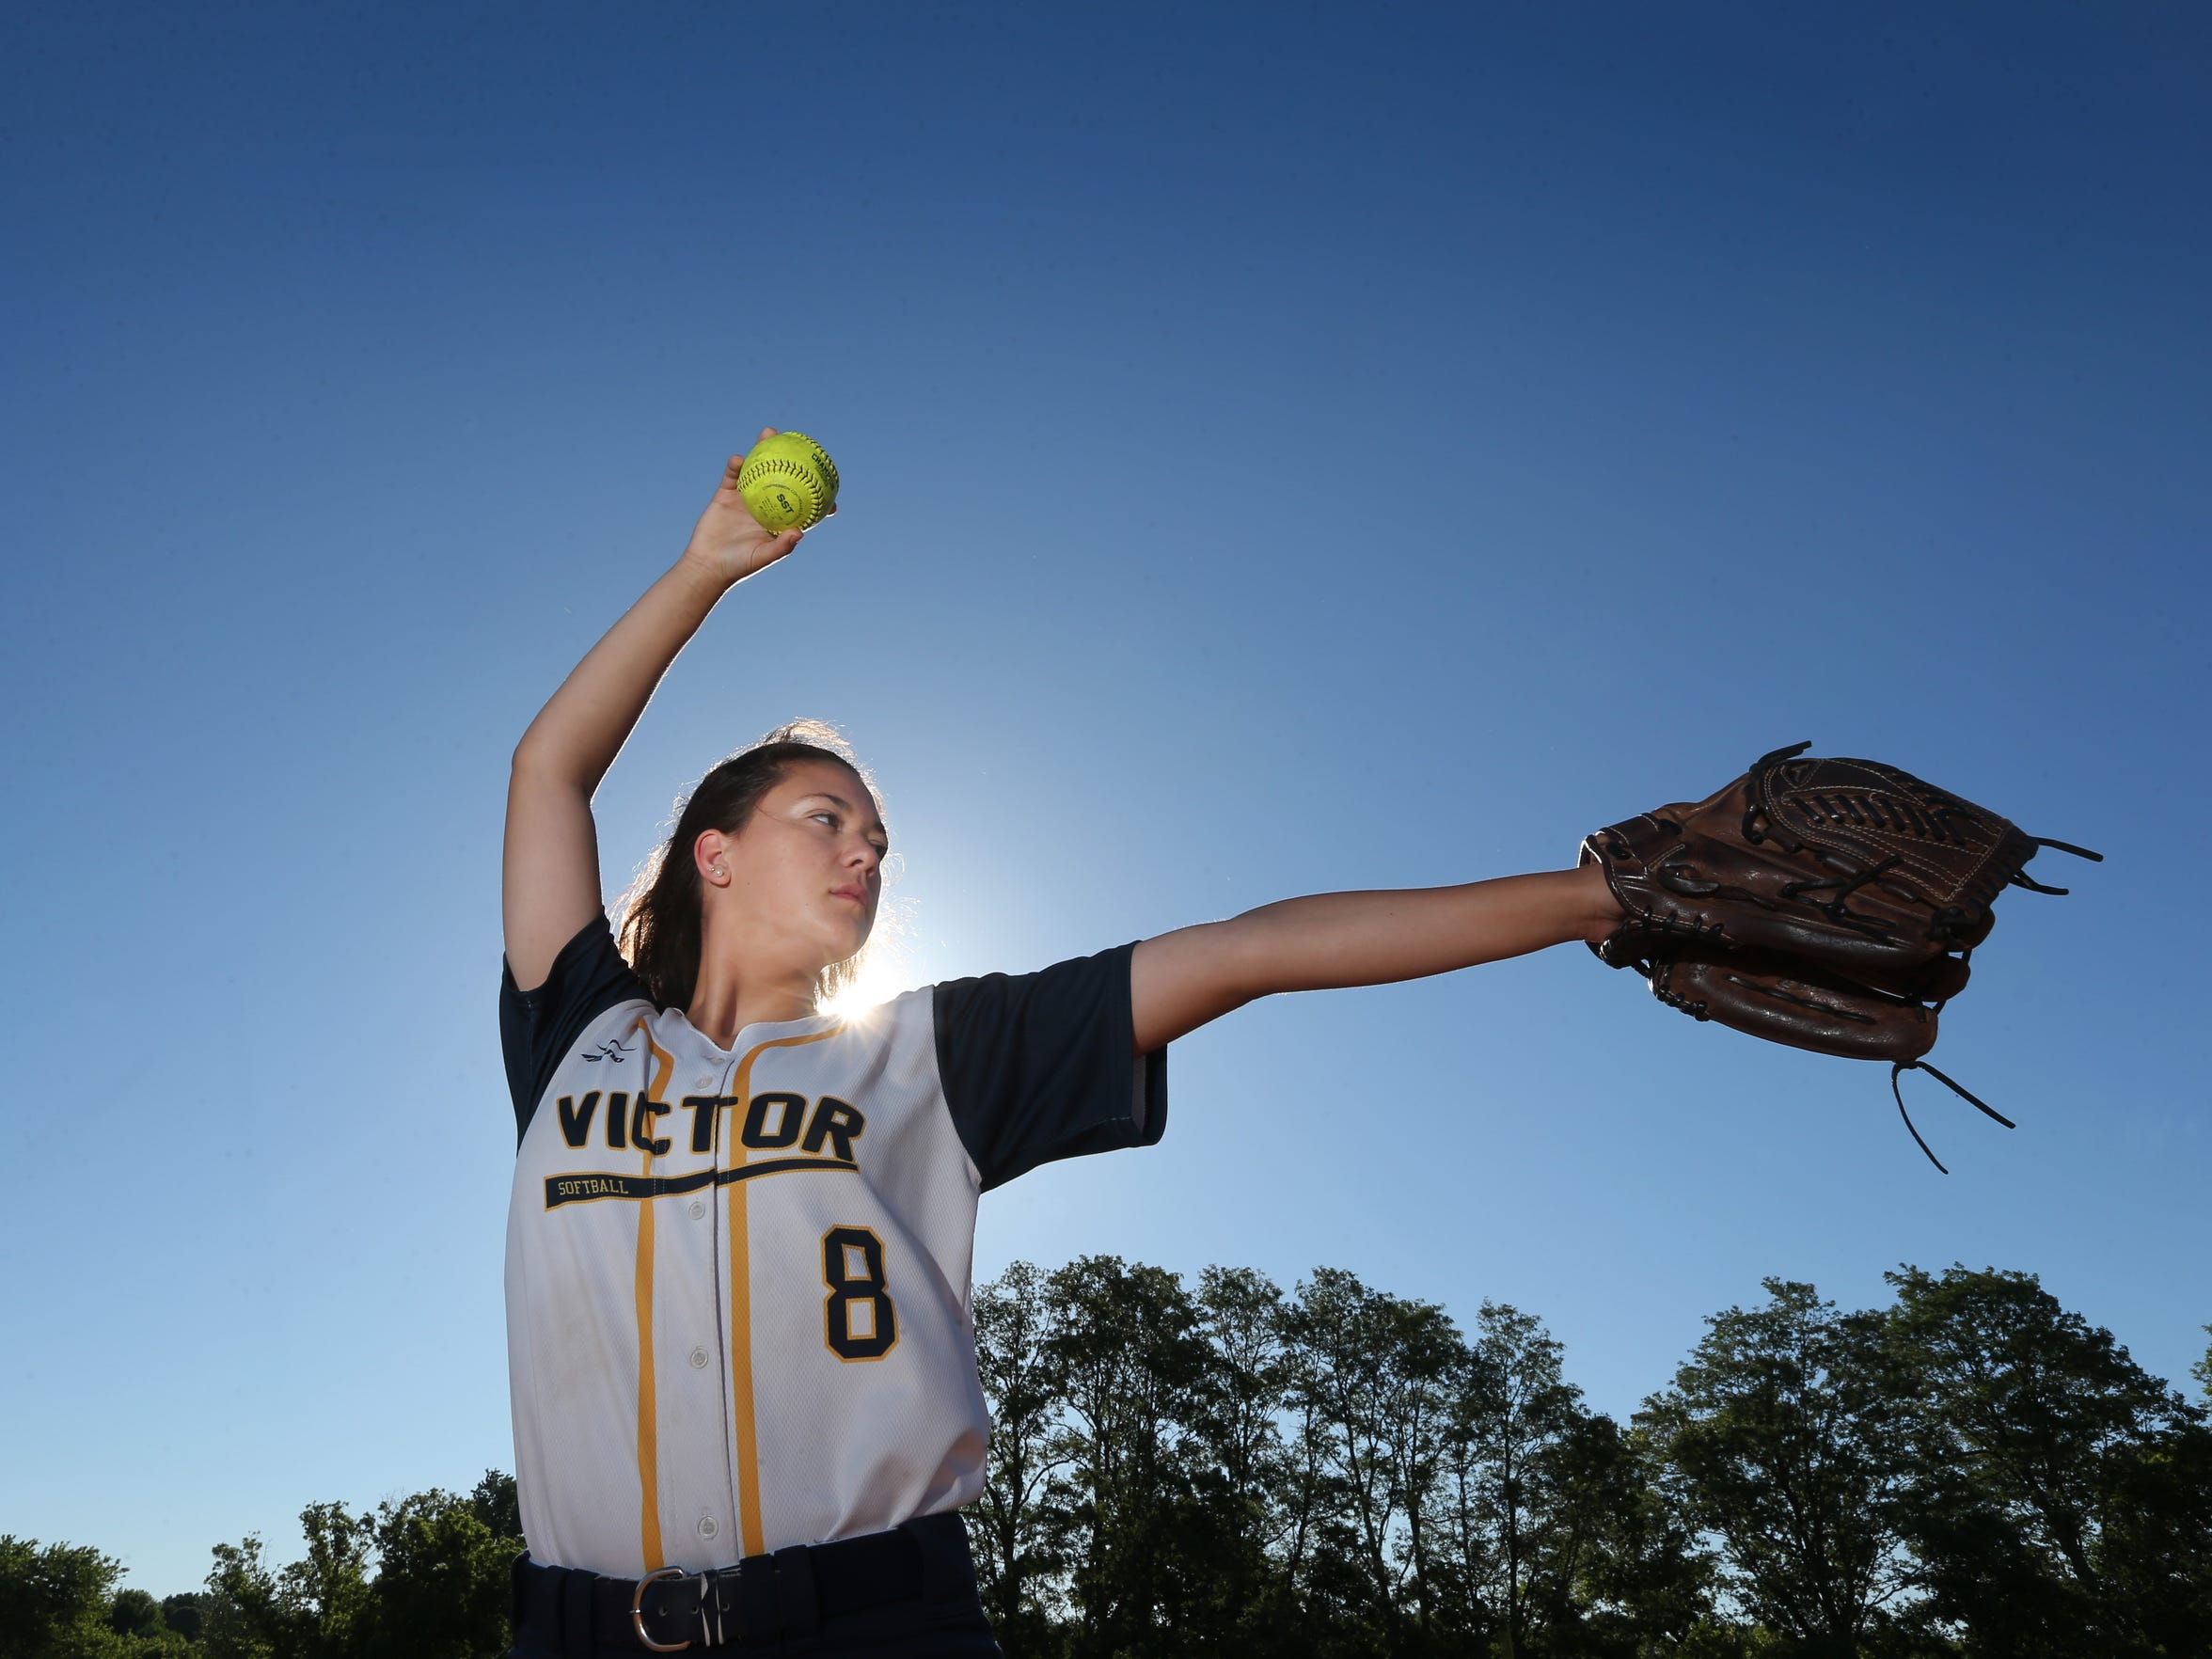 Victor's Katie Sidare on the mound at Victor High School Thursday, June 14, 2018.  Sidare is the All Greater Rochester softball player of the year for 2018.